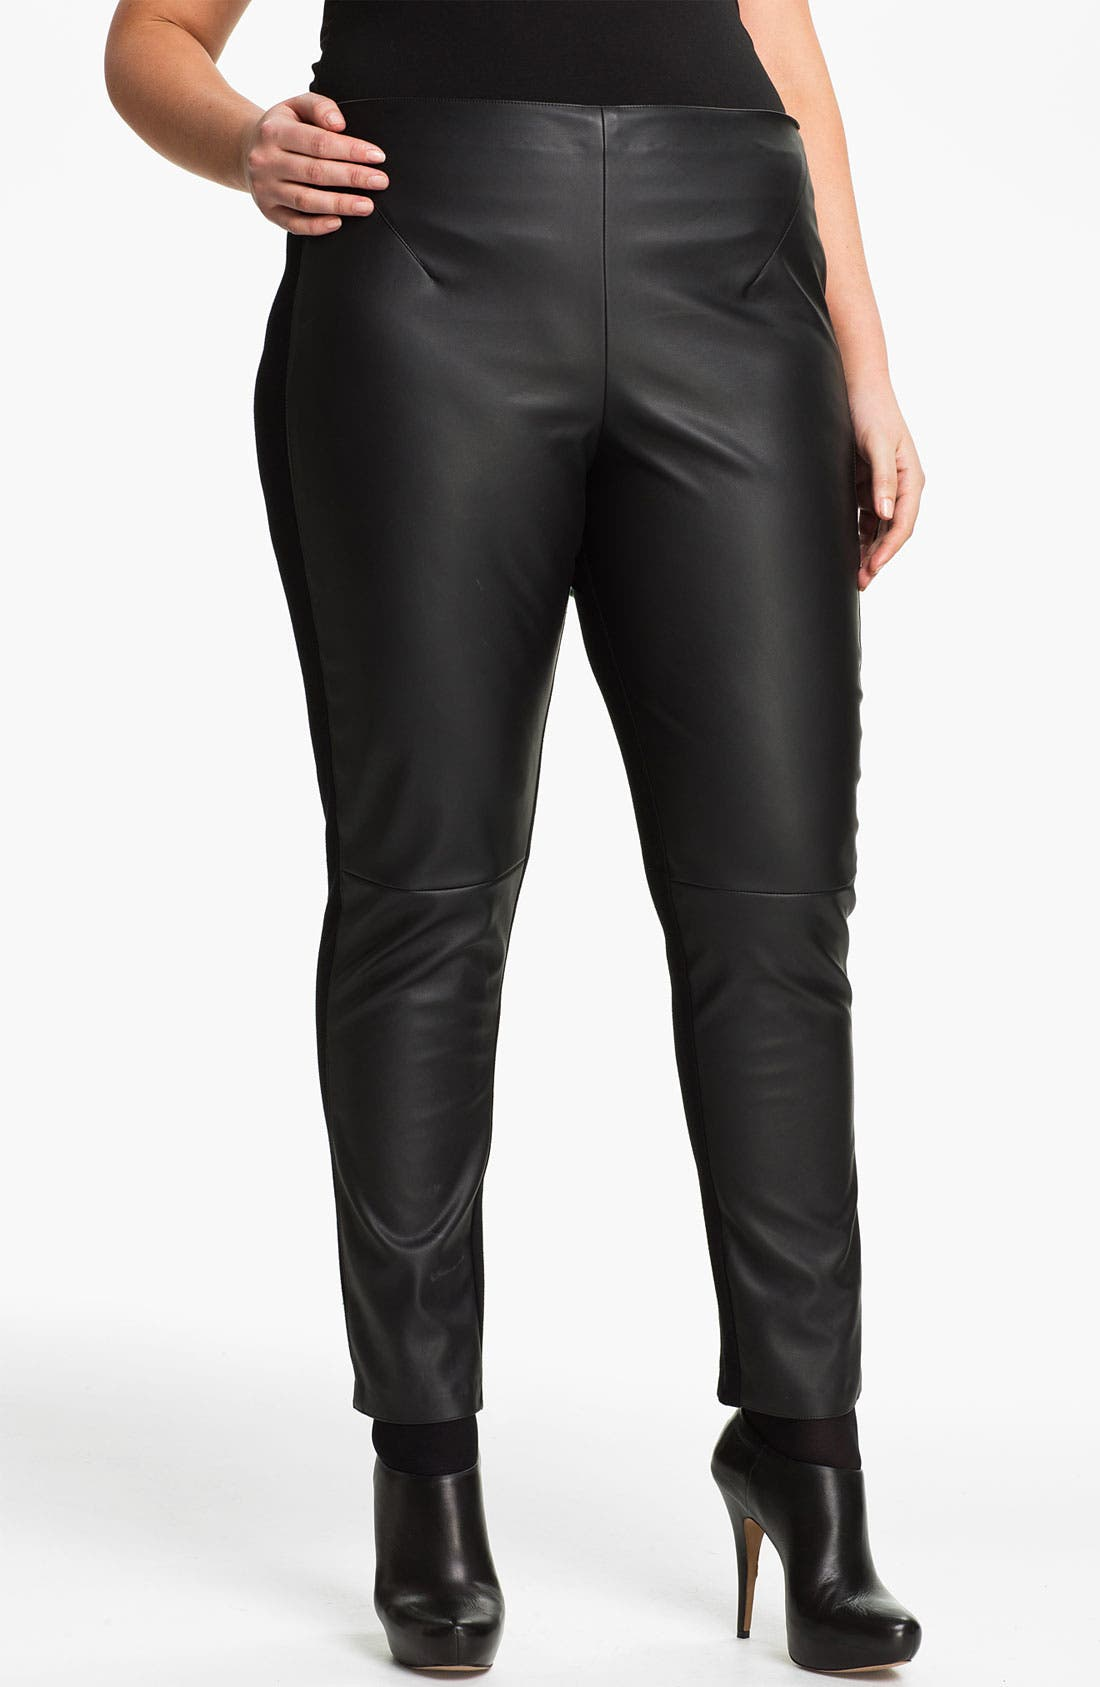 Main Image - Two by Vince Camuto Faux Leather & Knit Leggings (Plus)